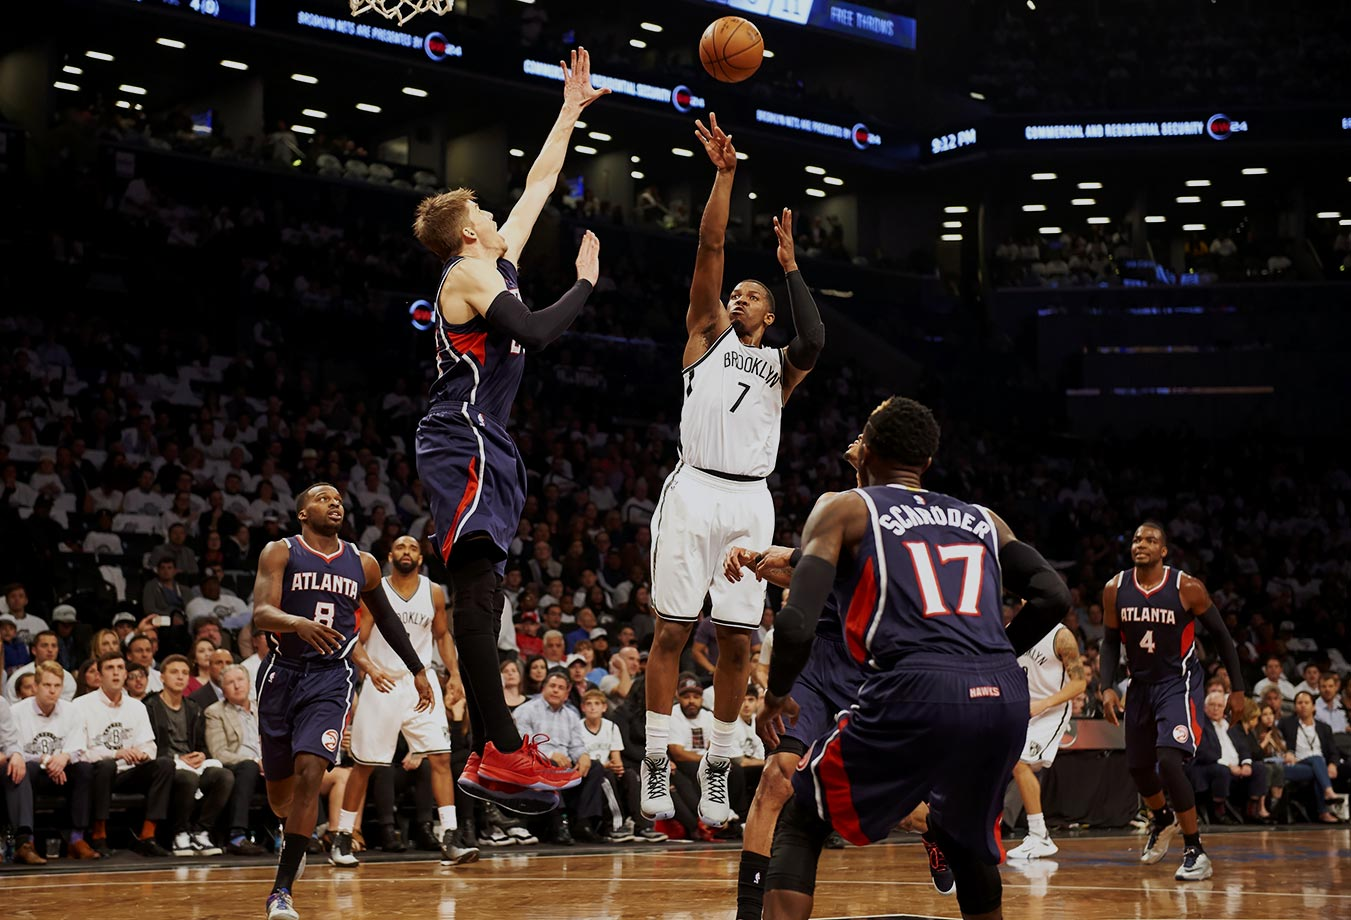 The Hawks need to trade for a scorer who can get them a basket when defenses clamp down on their offense in the post-season, someone who can create their own shot. Maybe Joe Johnson is available.